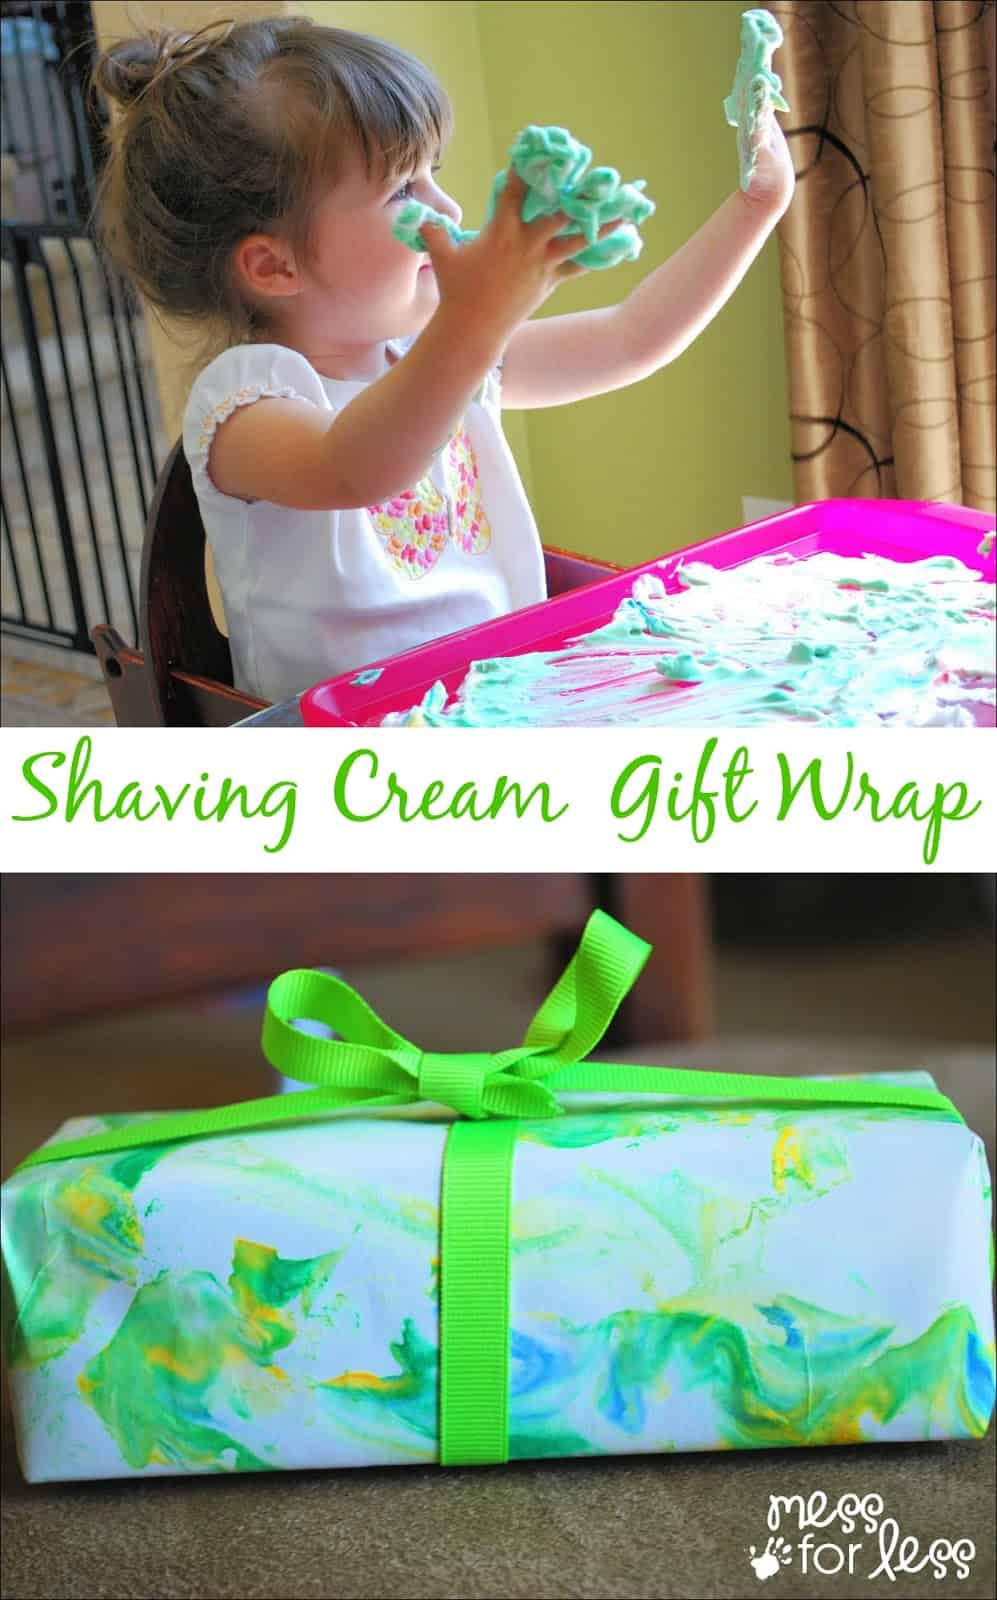 Shaving Cream Cards and Gift Wrap - It's easy for kids to make beautiful cards and gift wrap using marbled shaving cream.